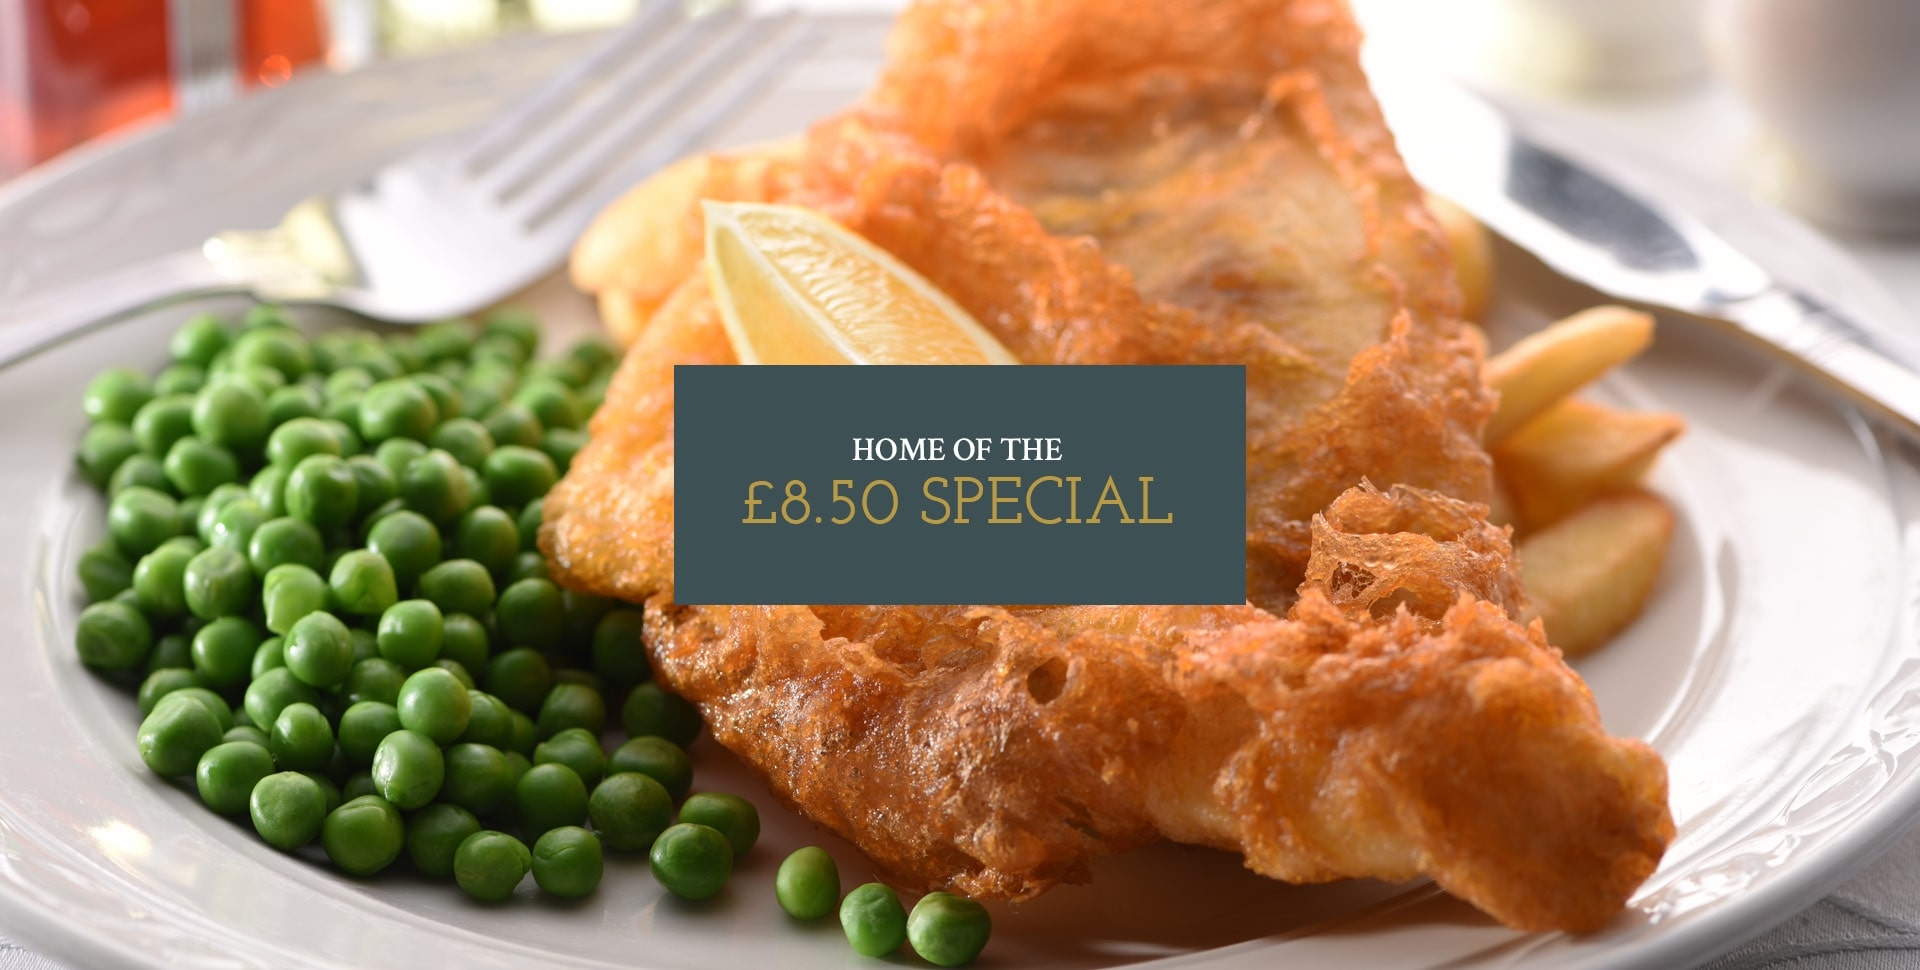 Cheap Dining Deals at the Durrant Hotel in North Devon -  £8.50 Meal Deals